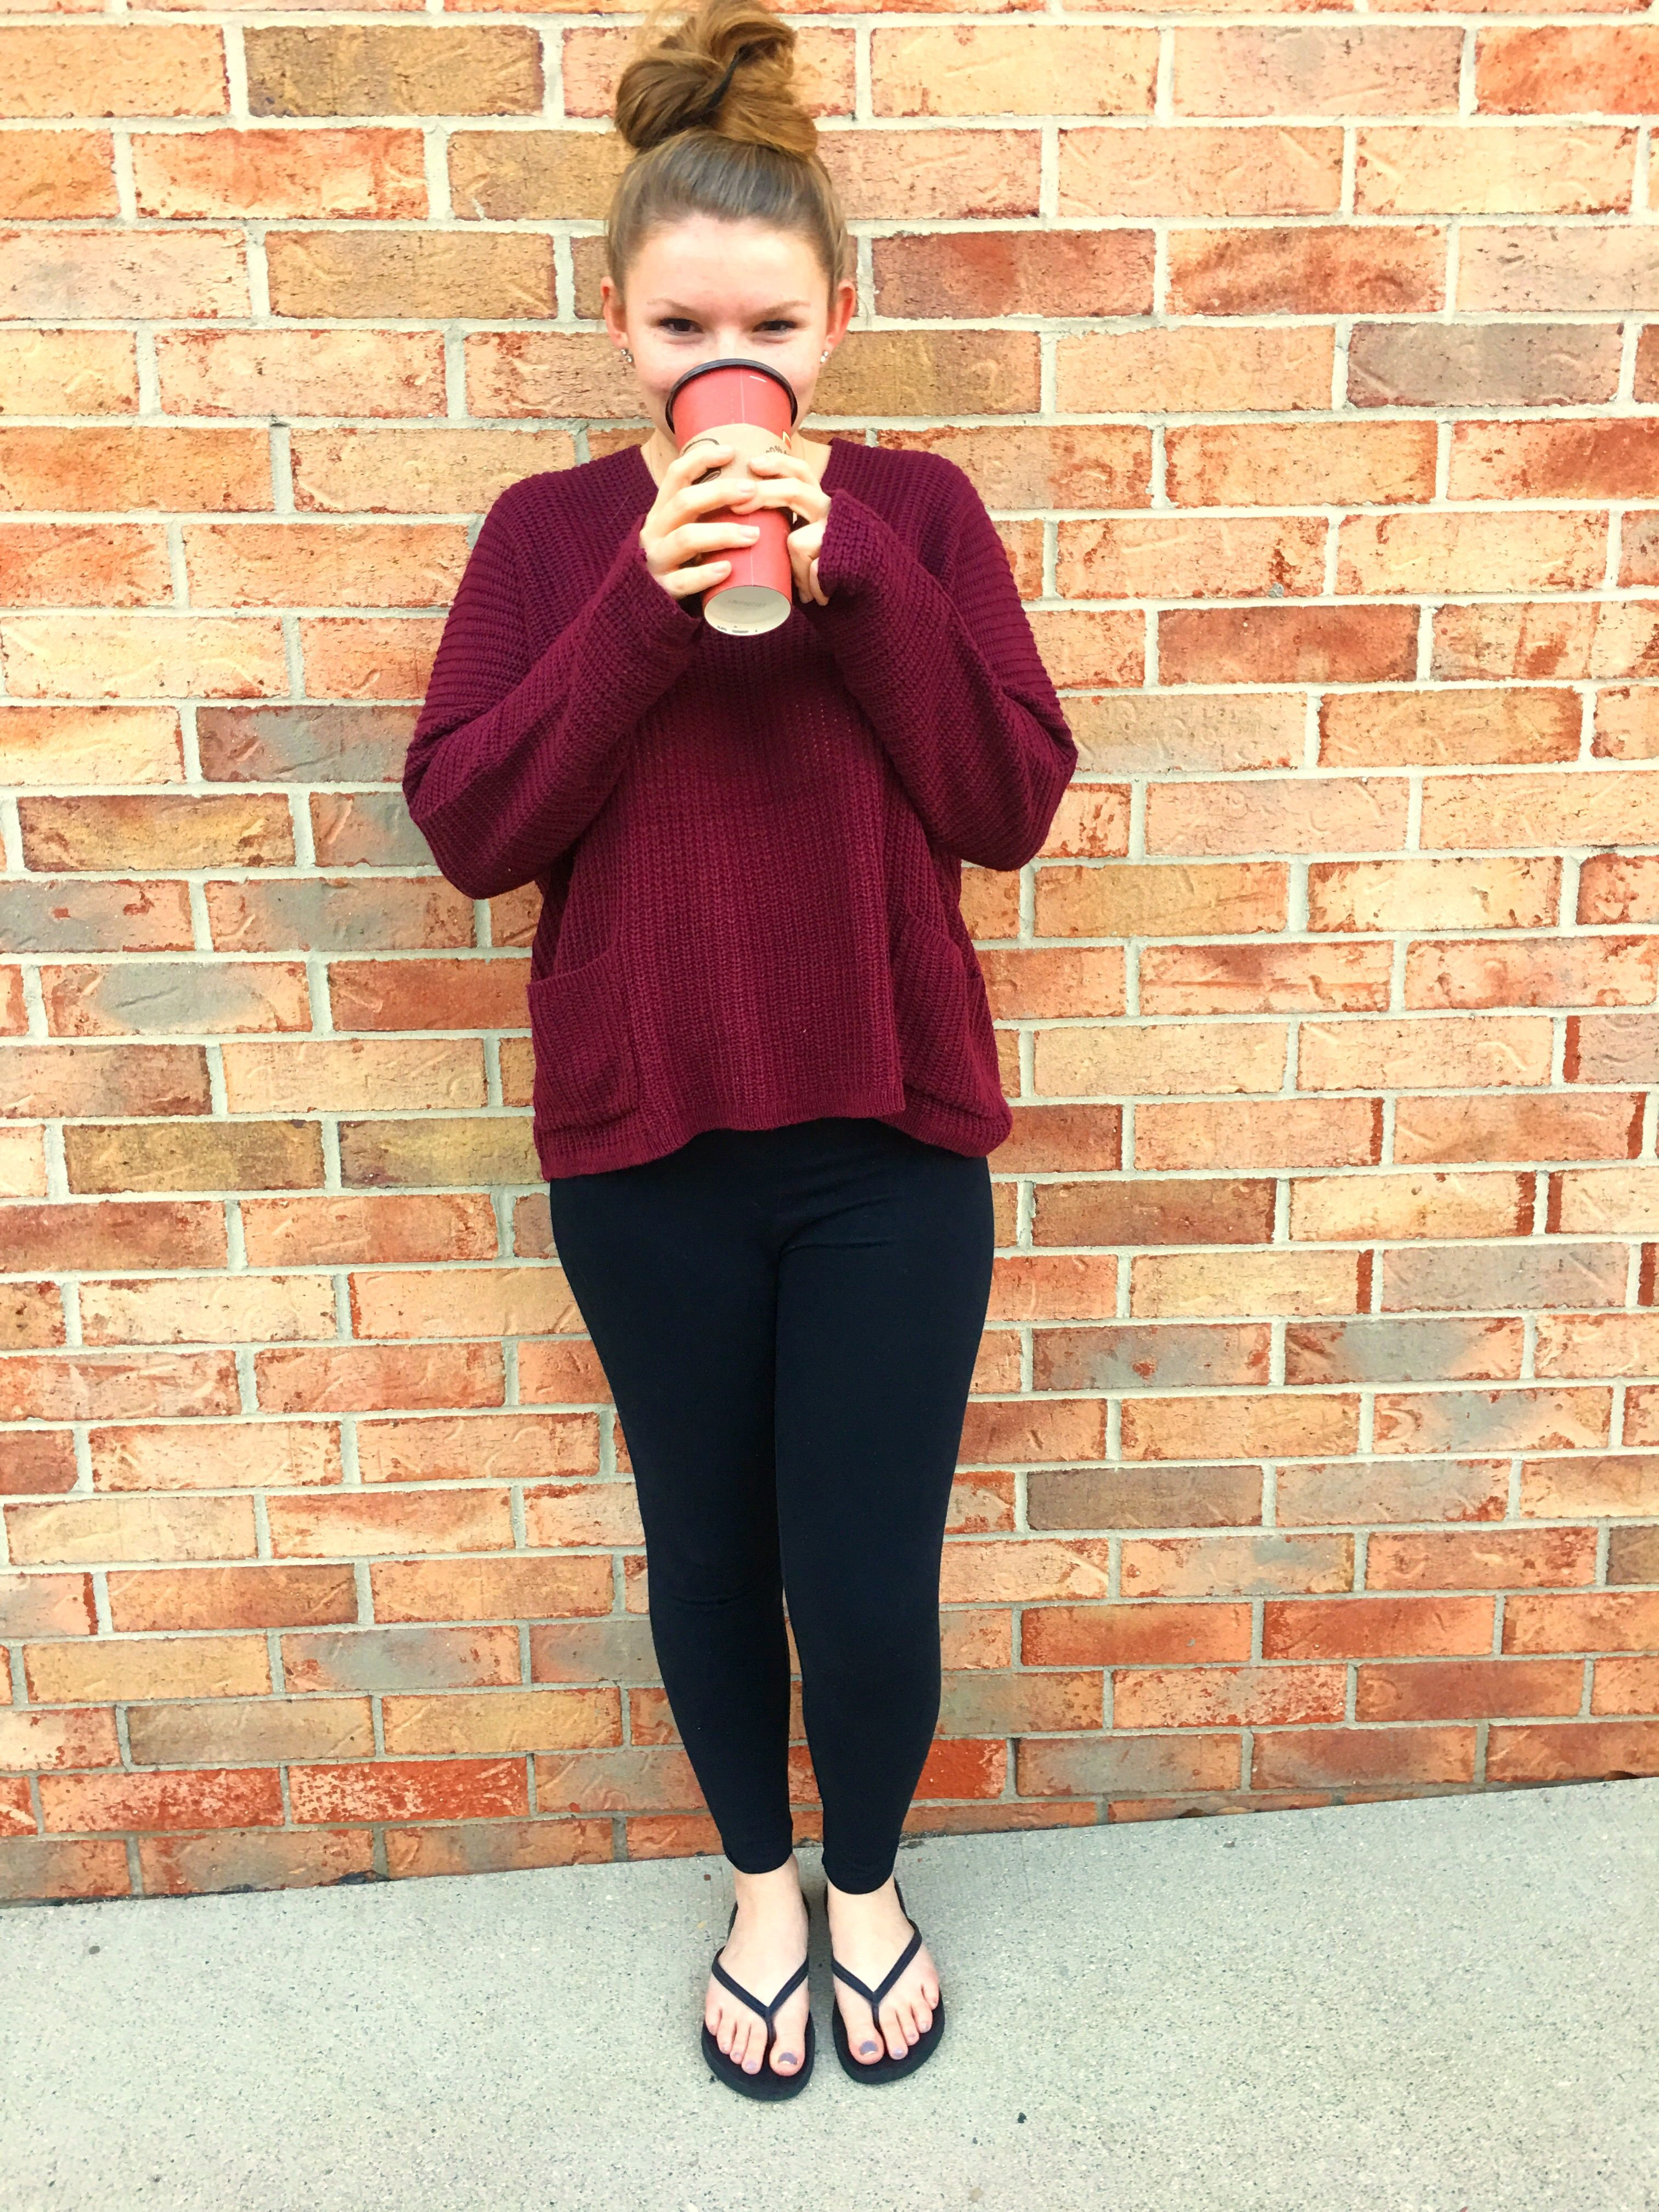 Fall is here!!! You know what that means? Sweaters, leggings and hot chocolate! Check out my full blog post here: http://allthingskaylee.com/index.php/2016/10/04/fall-days/